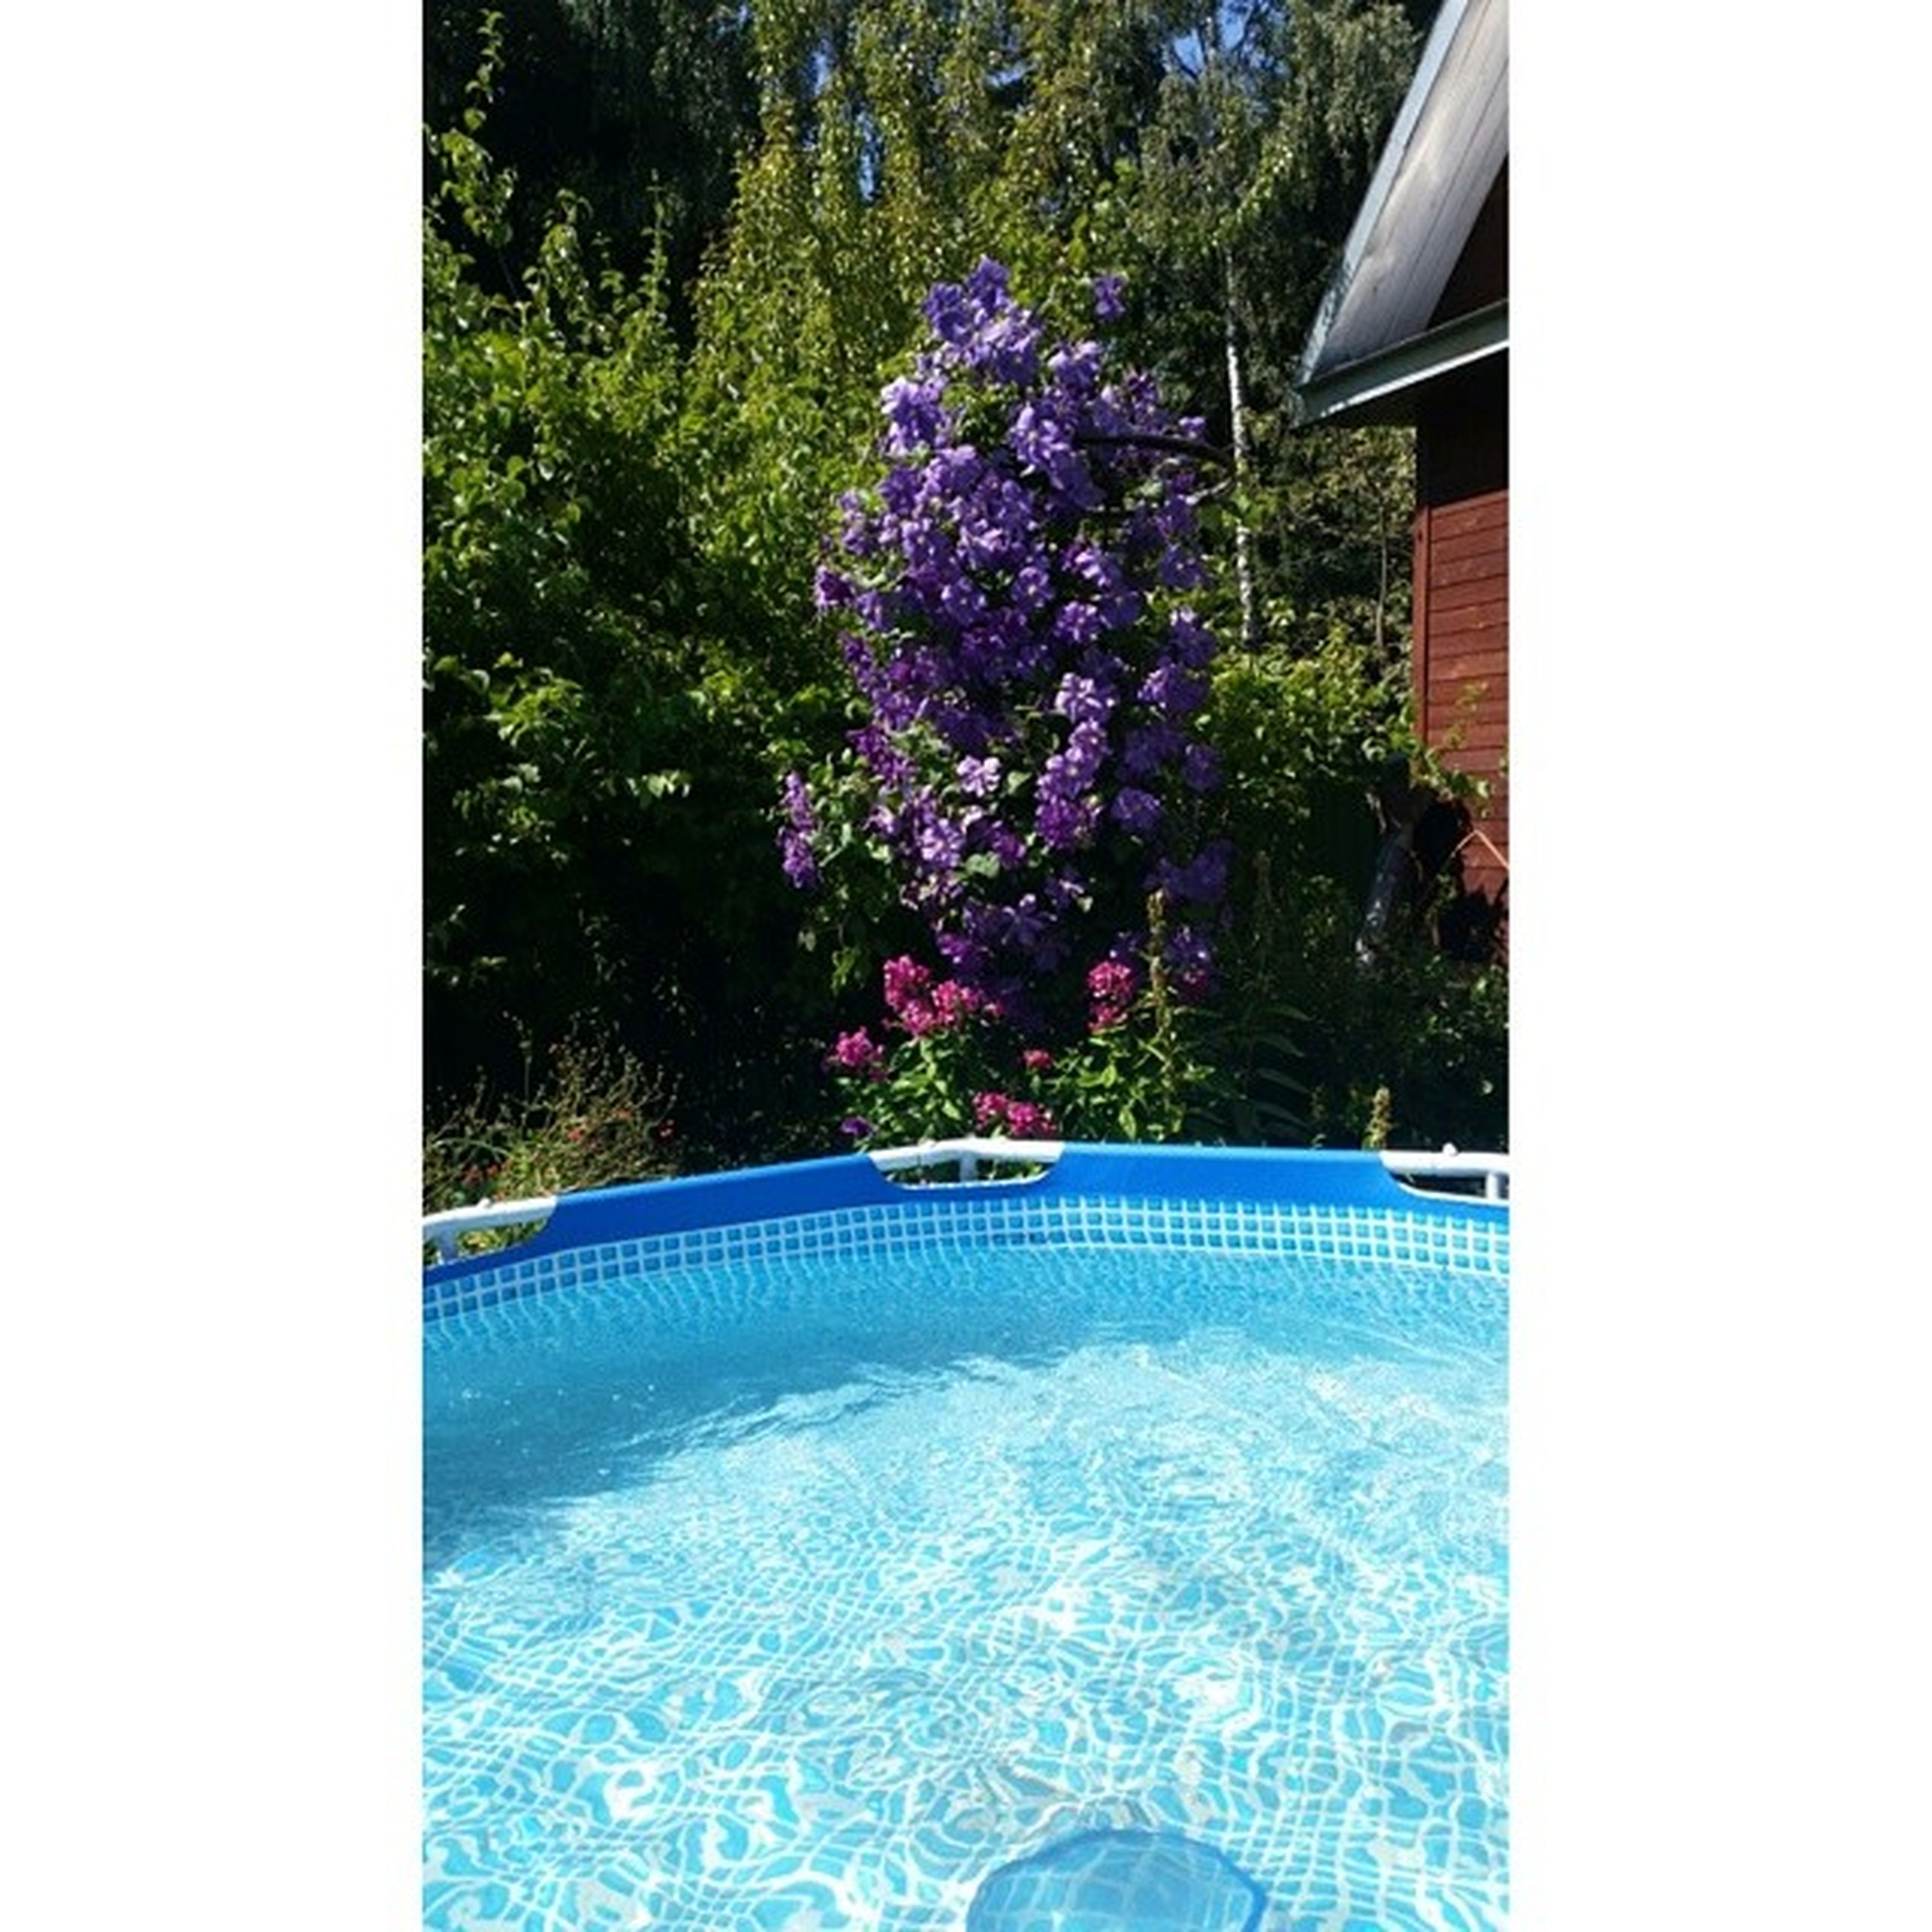 water, transfer print, auto post production filter, tree, beauty in nature, blue, growth, nature, sea, flower, plant, swimming pool, day, beach, clear sky, scenics, outdoors, tranquility, tranquil scene, sunlight